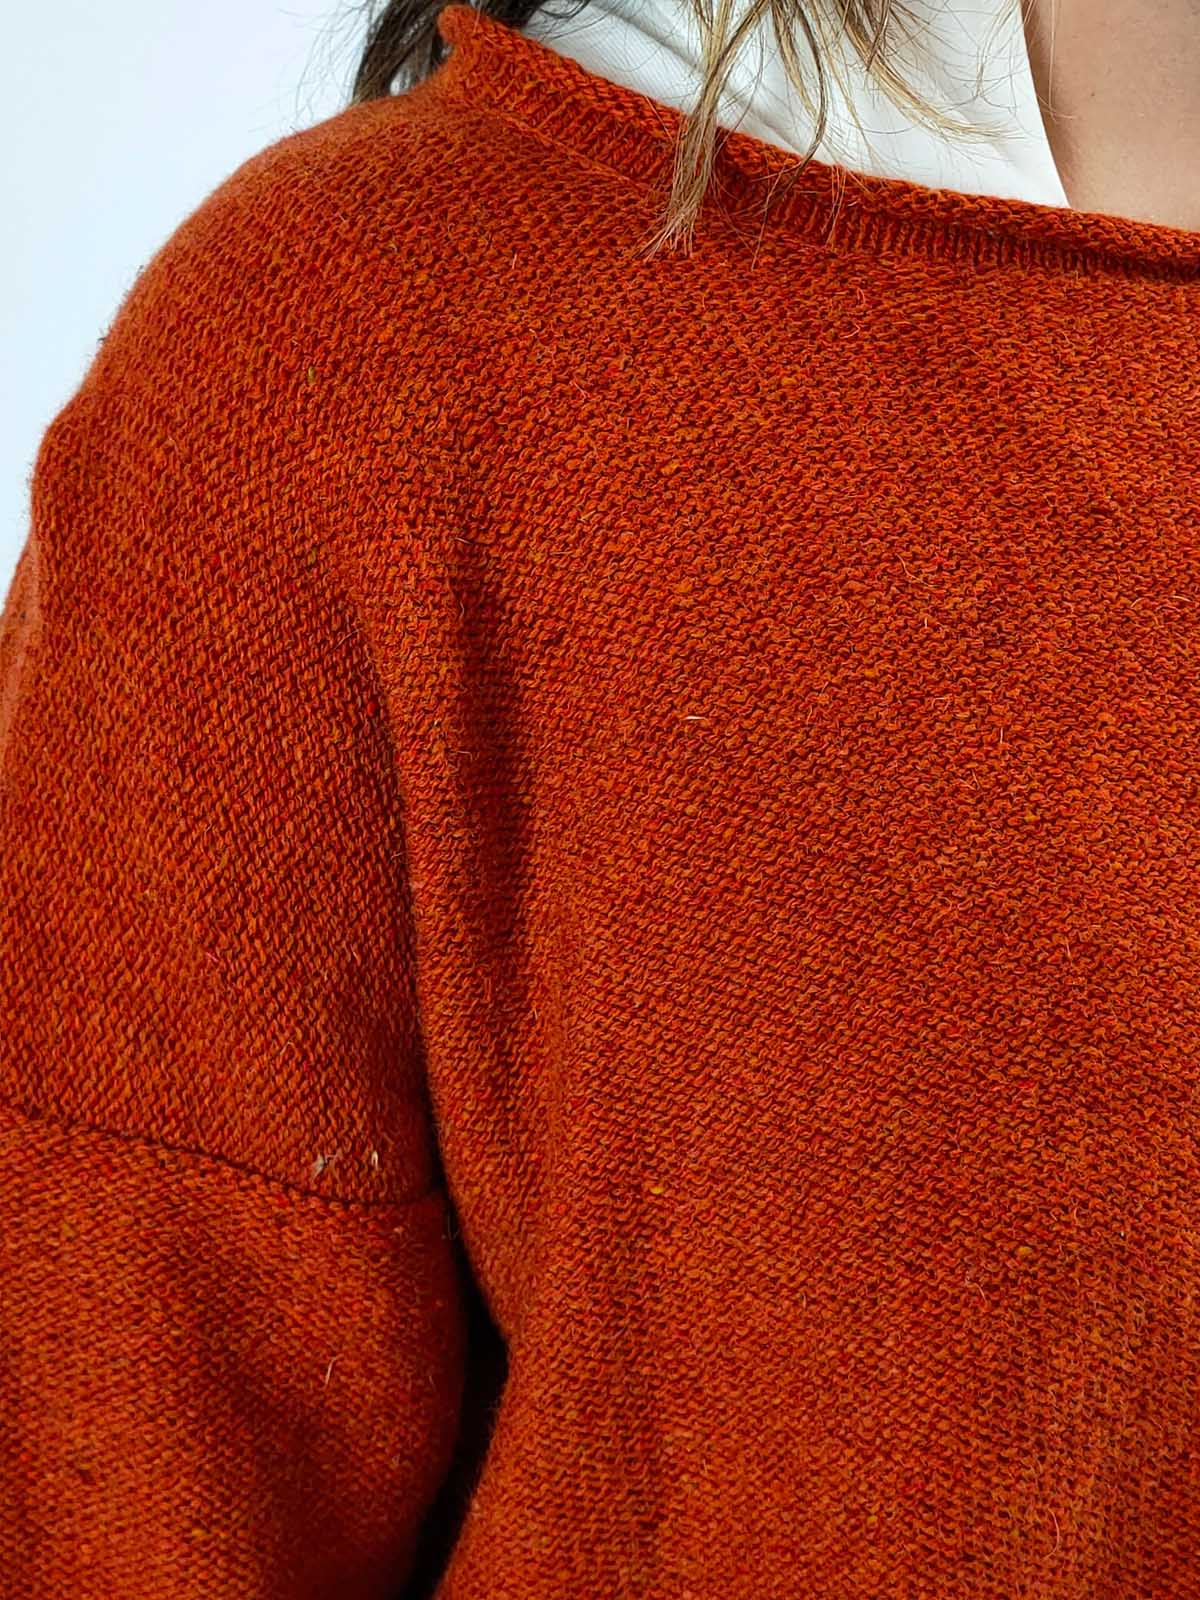 Quernstone Lambswool & Cashmere [DUET] Jumper - 2 Colours